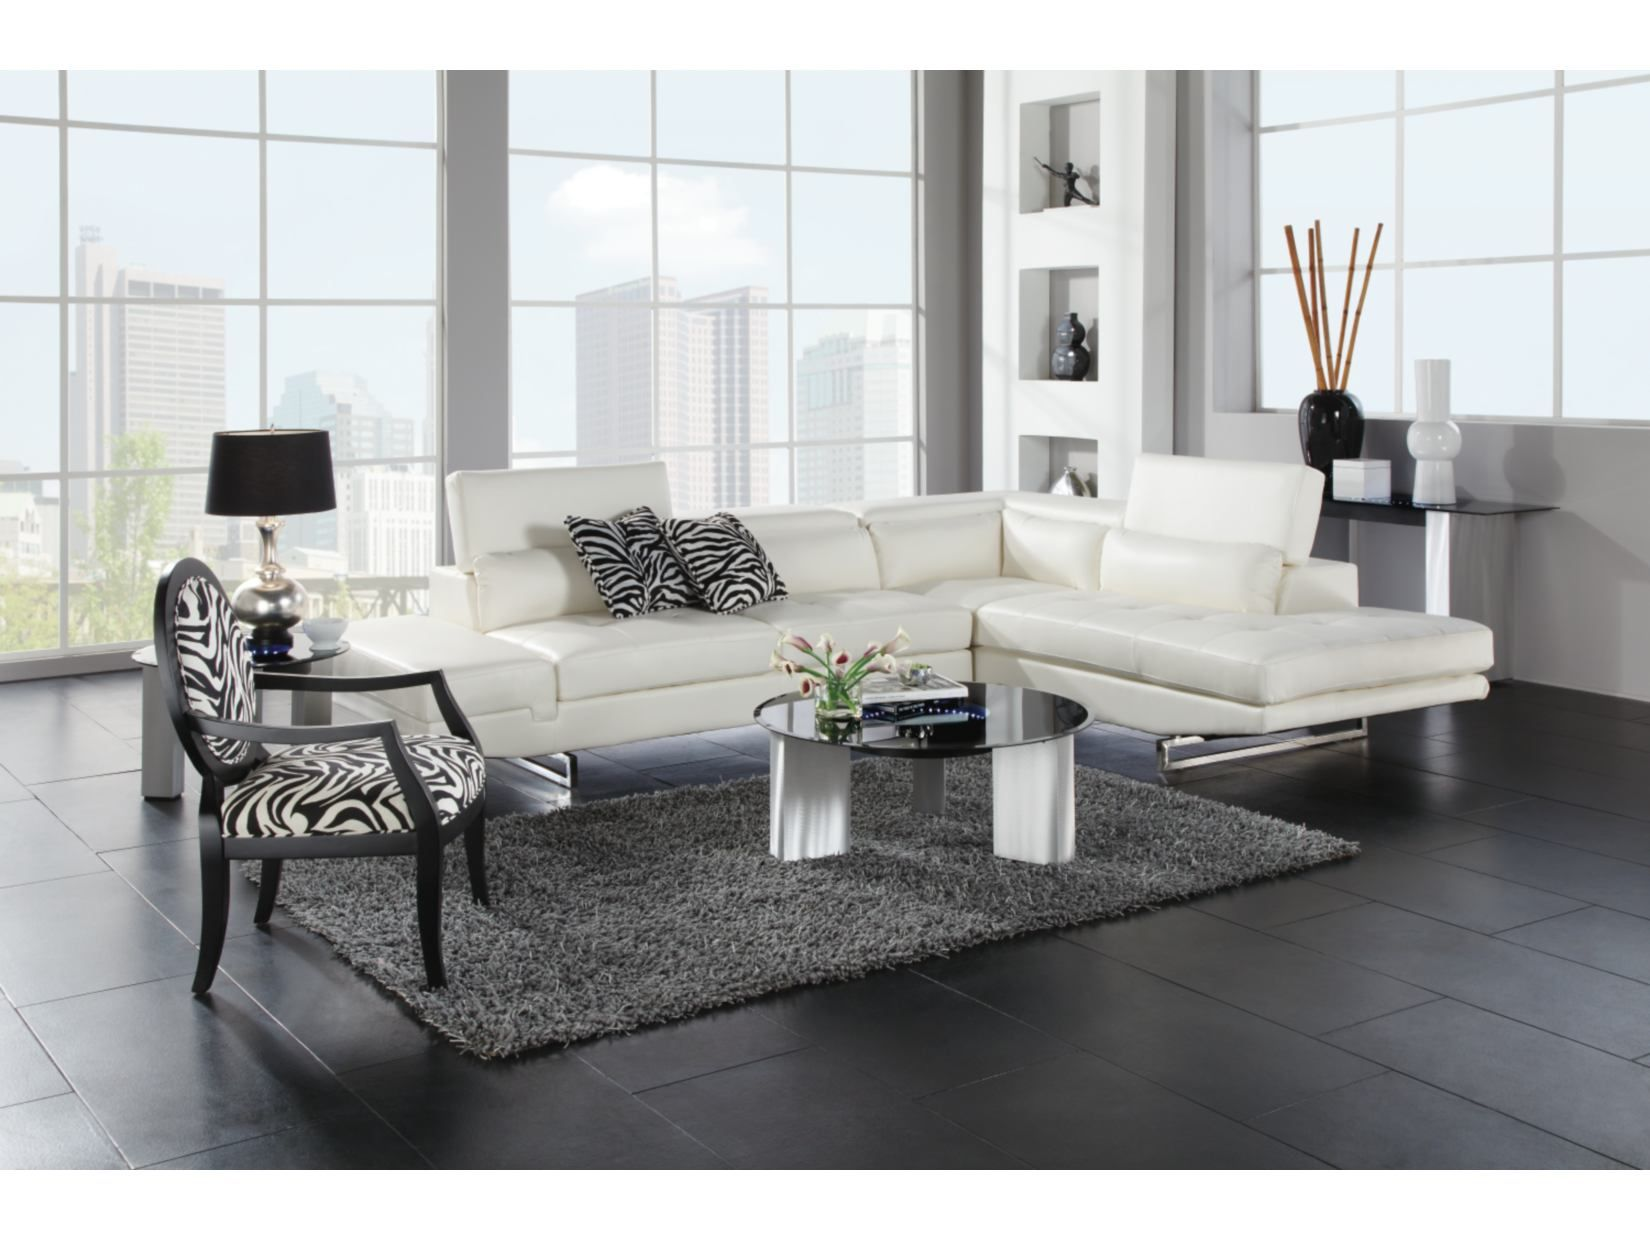 Madrid White 2-PC Sectional - Value City Furniture | Lobby ...